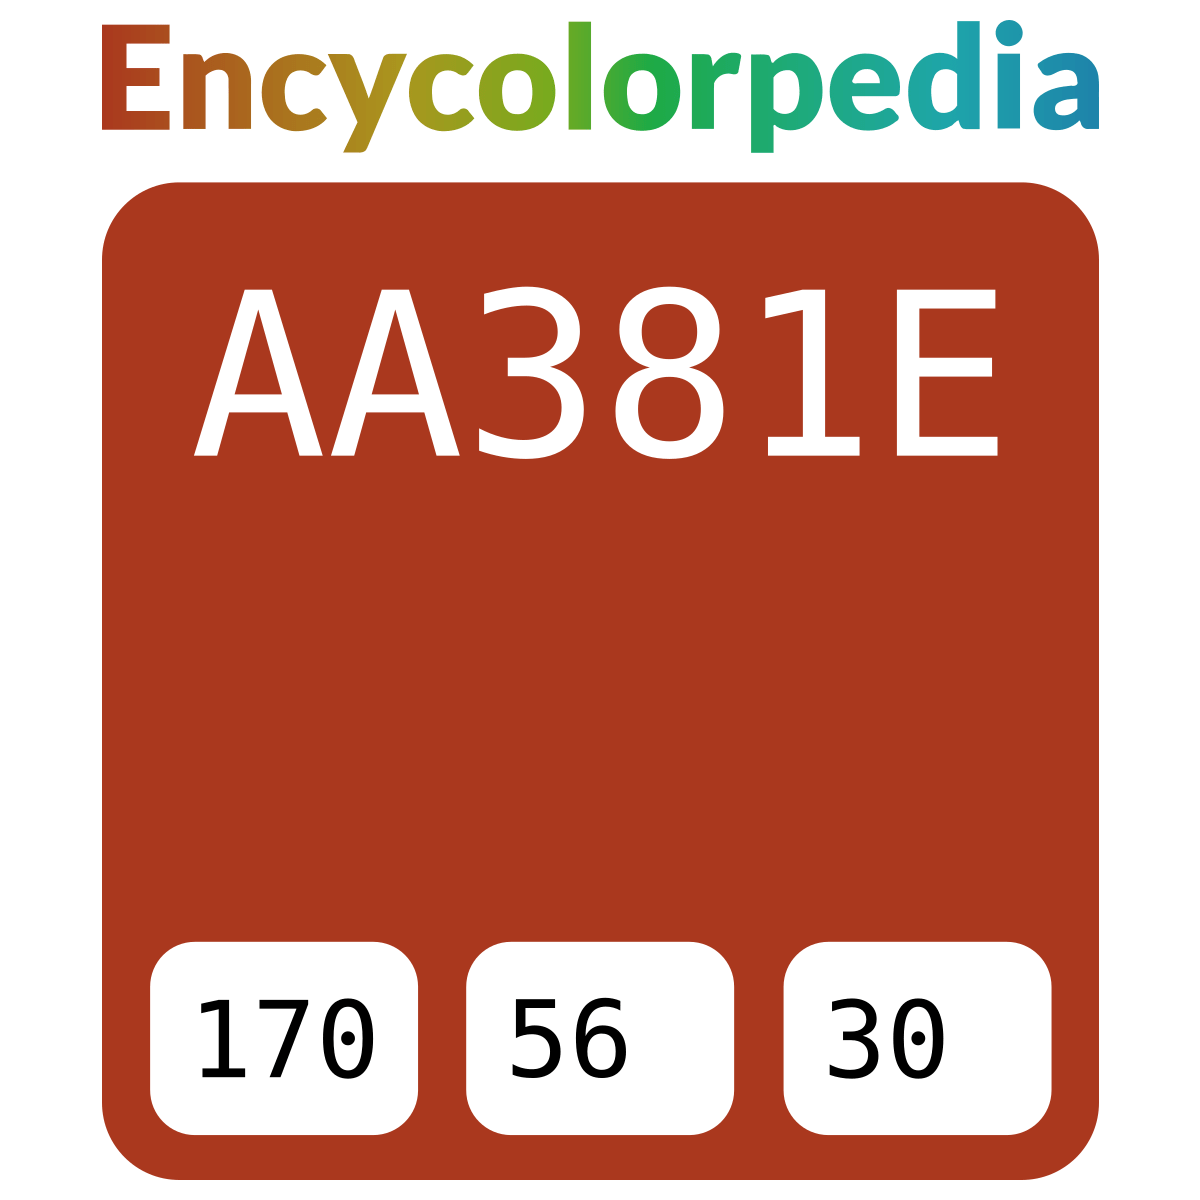 Chinese Red Aa381e Hex Color Code Rgb And Paints